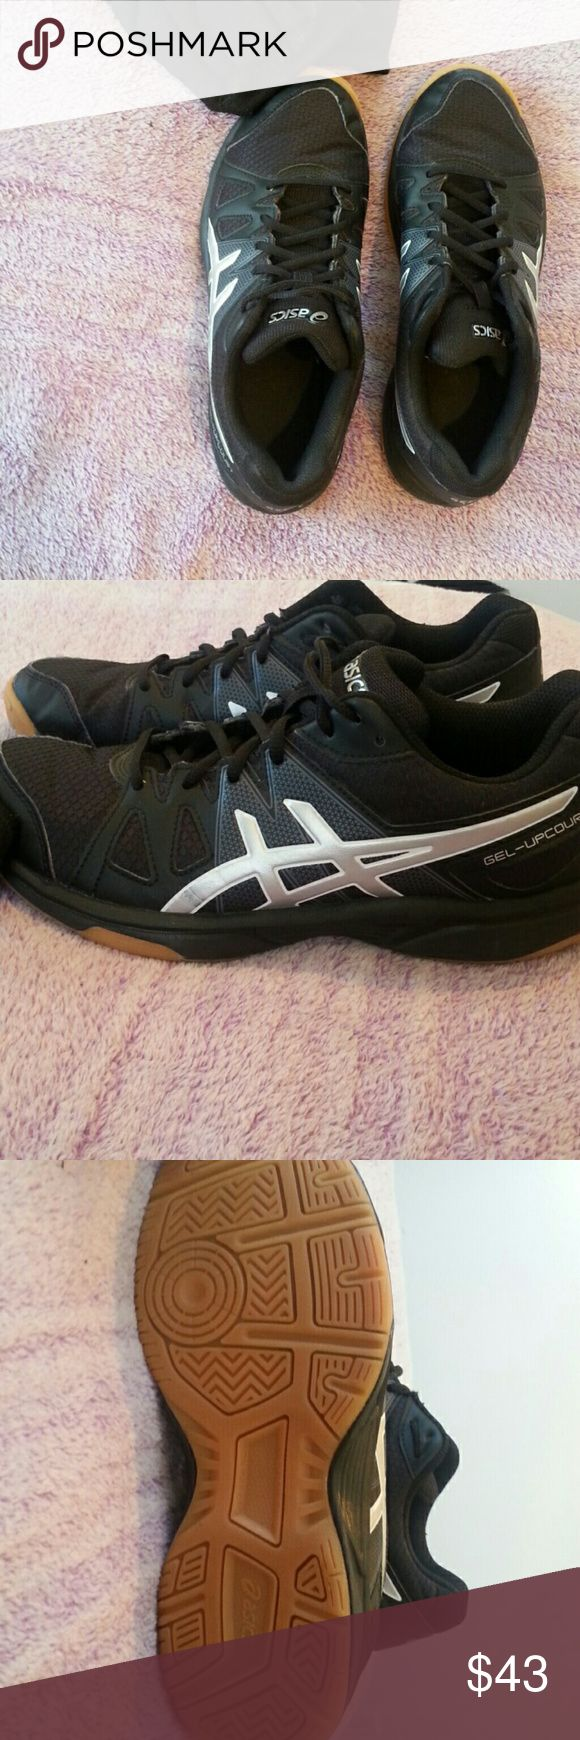 Selling this Asics volleyball shoes on Poshmark! My username is: nerdykitten3. #shopmycloset #poshmark #fashion #shopping #style #forsale #Asics #Shoes